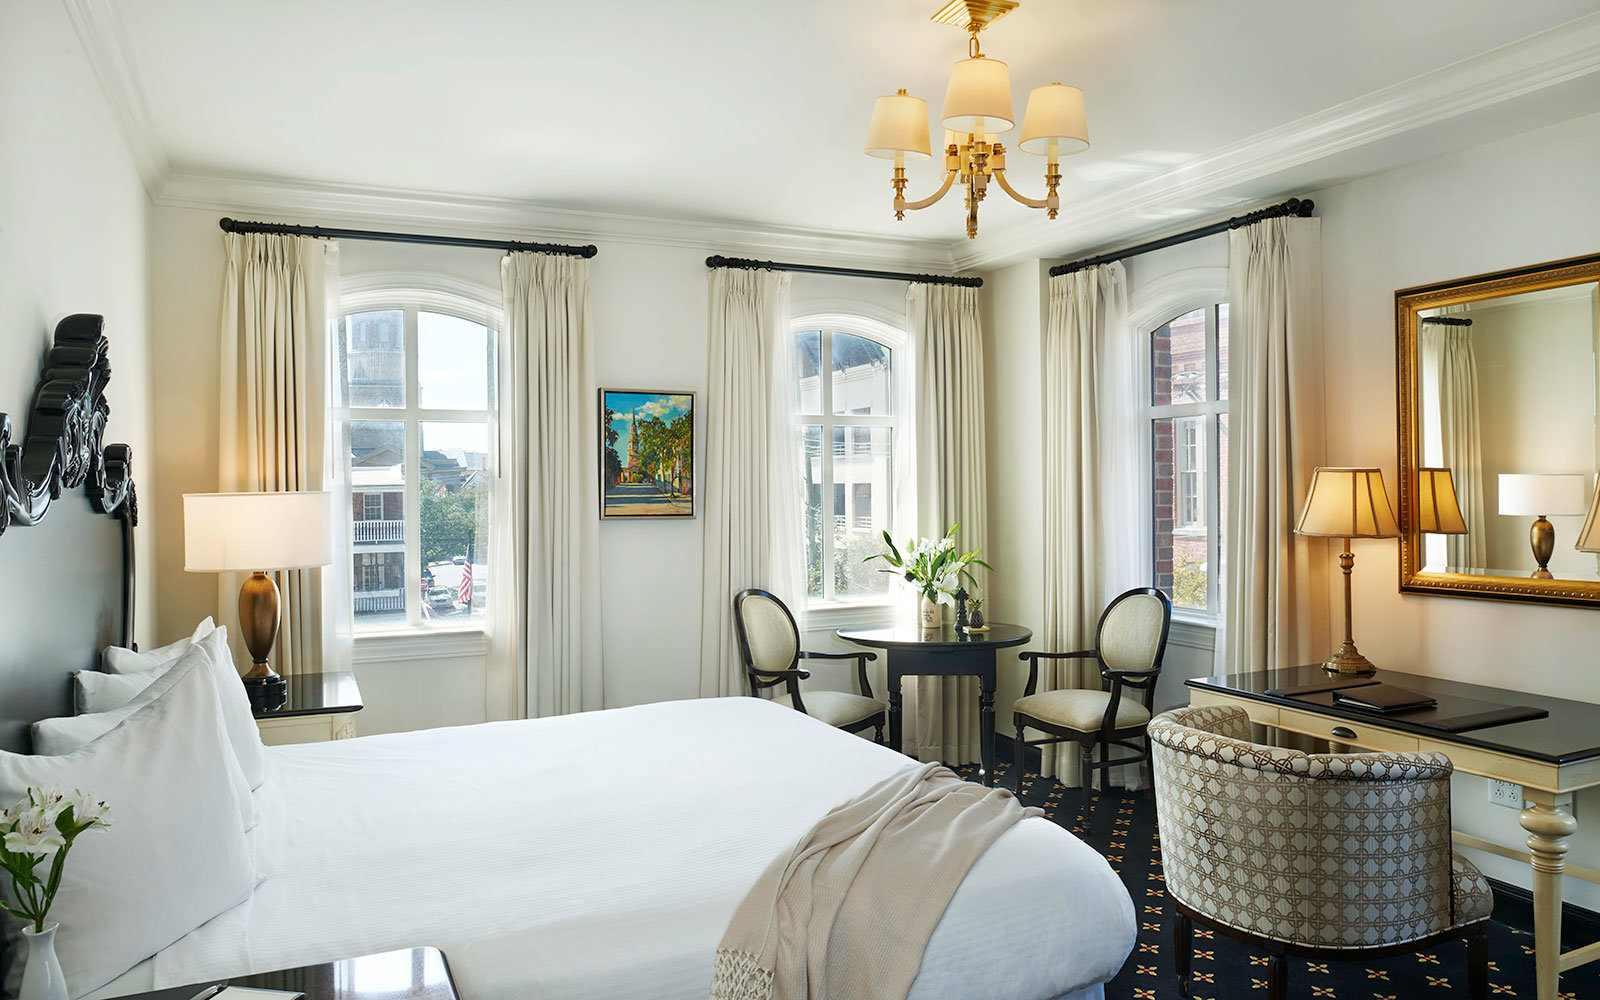 French Quarter Inn Hotel in Charleston